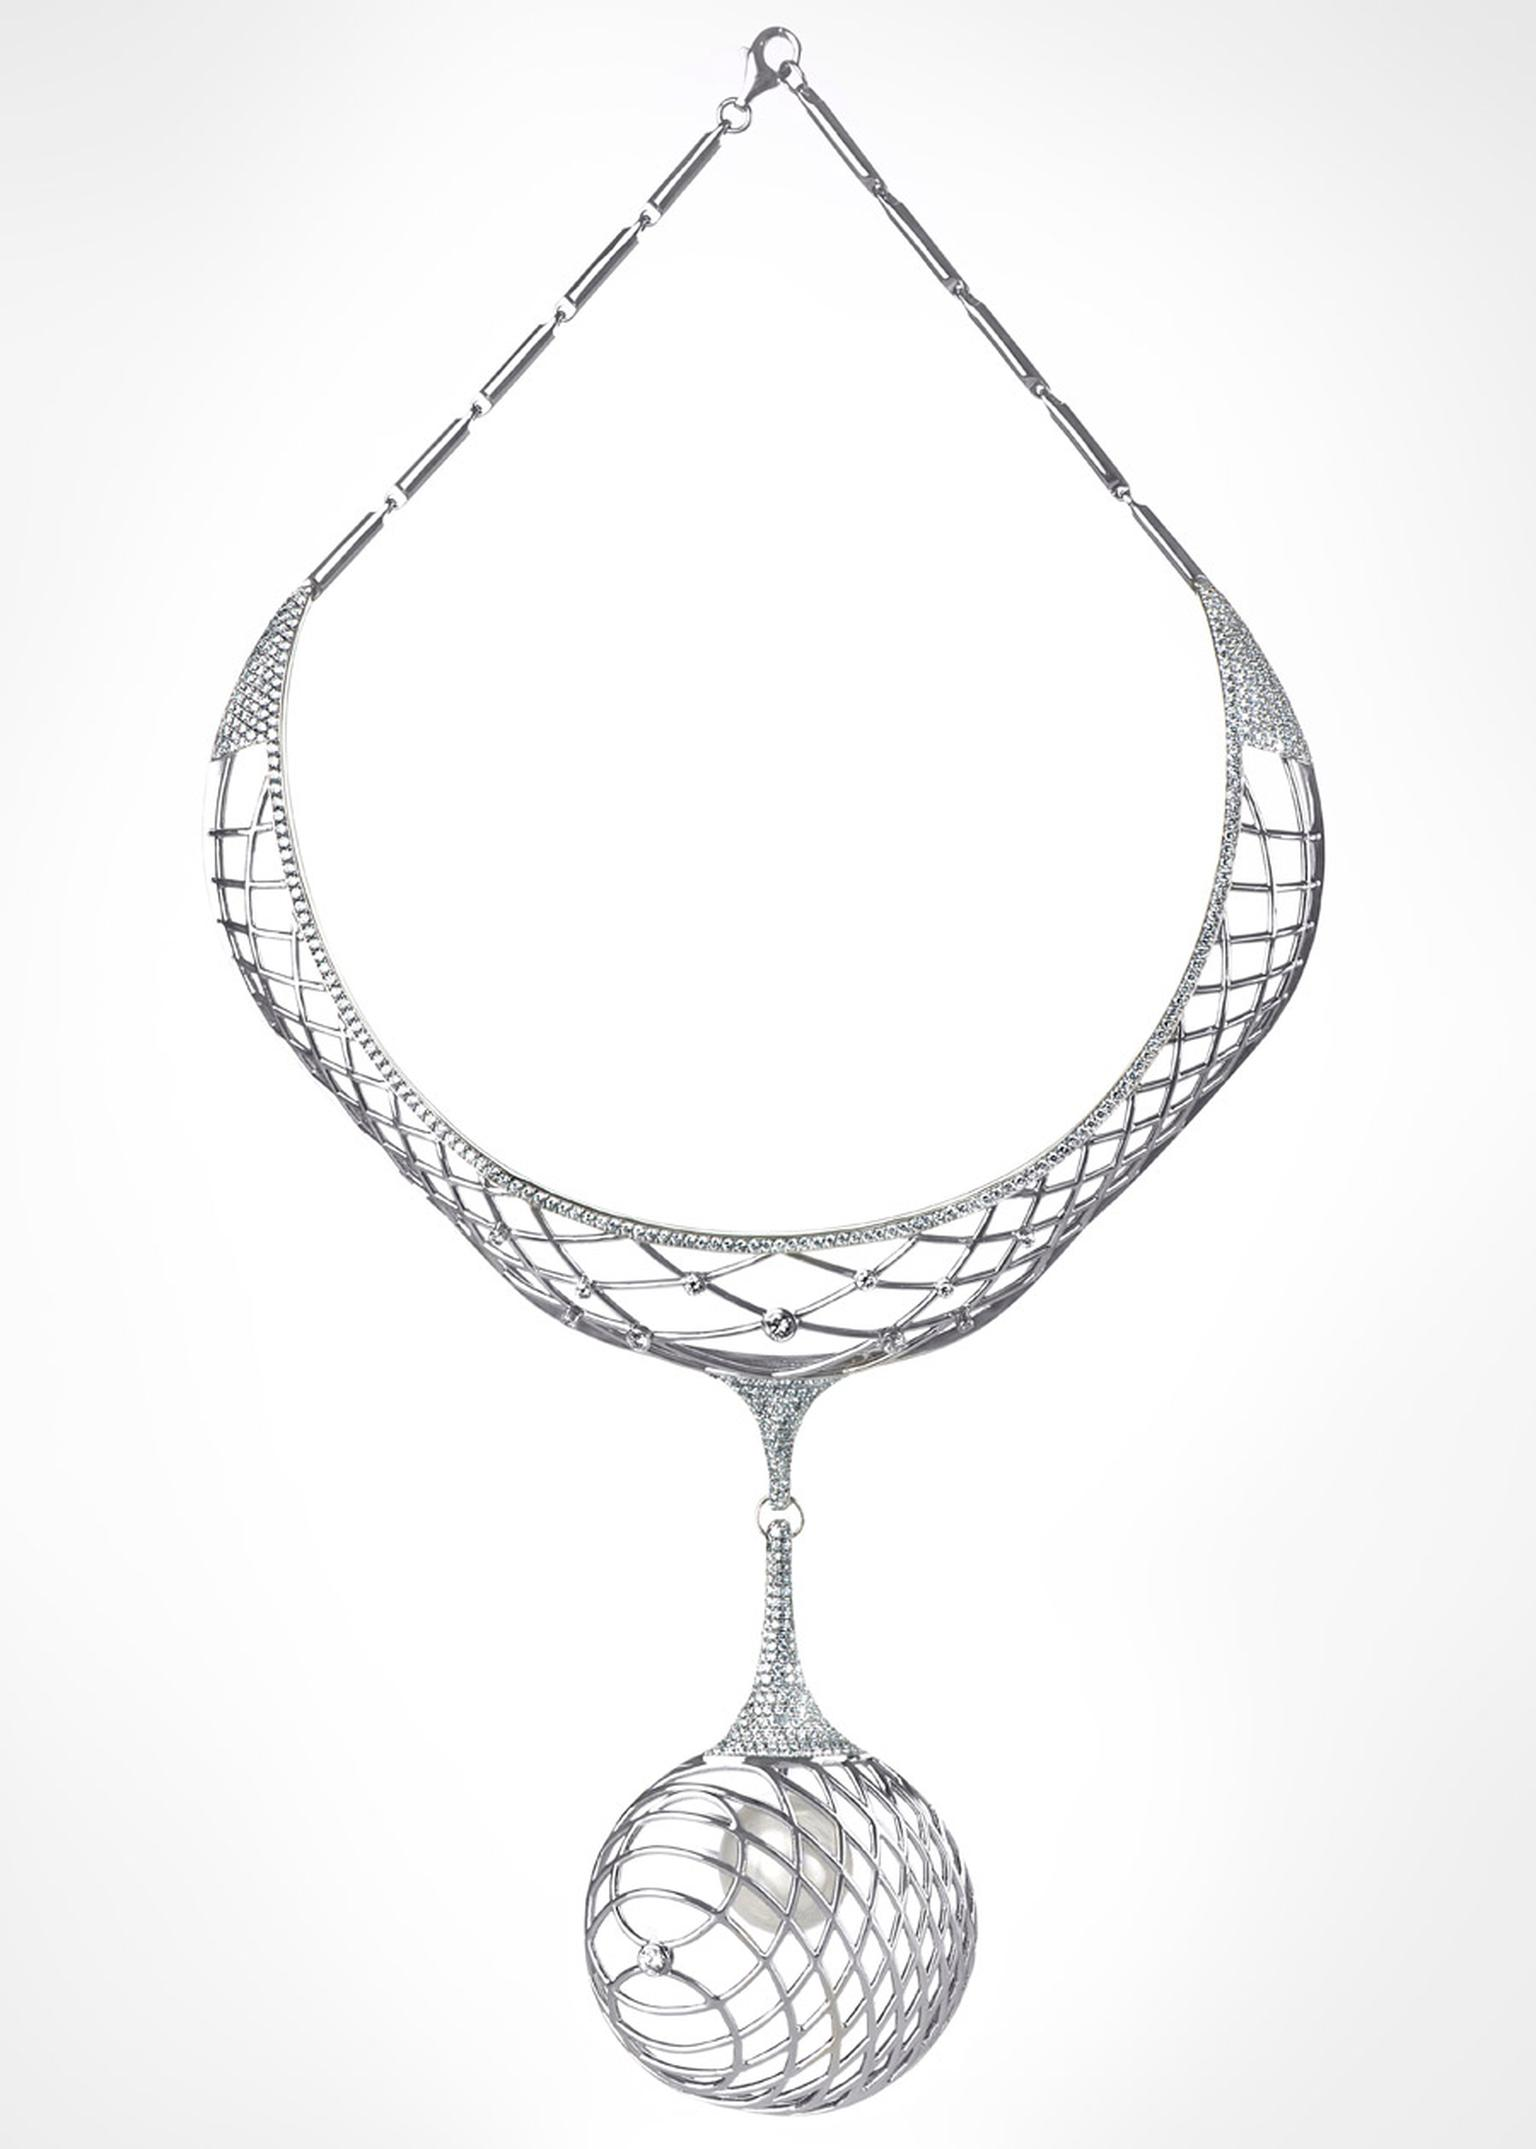 The-Palladium-Fine-Jewellery--Collection-by-Lara-Bohinc---Choker.jpg